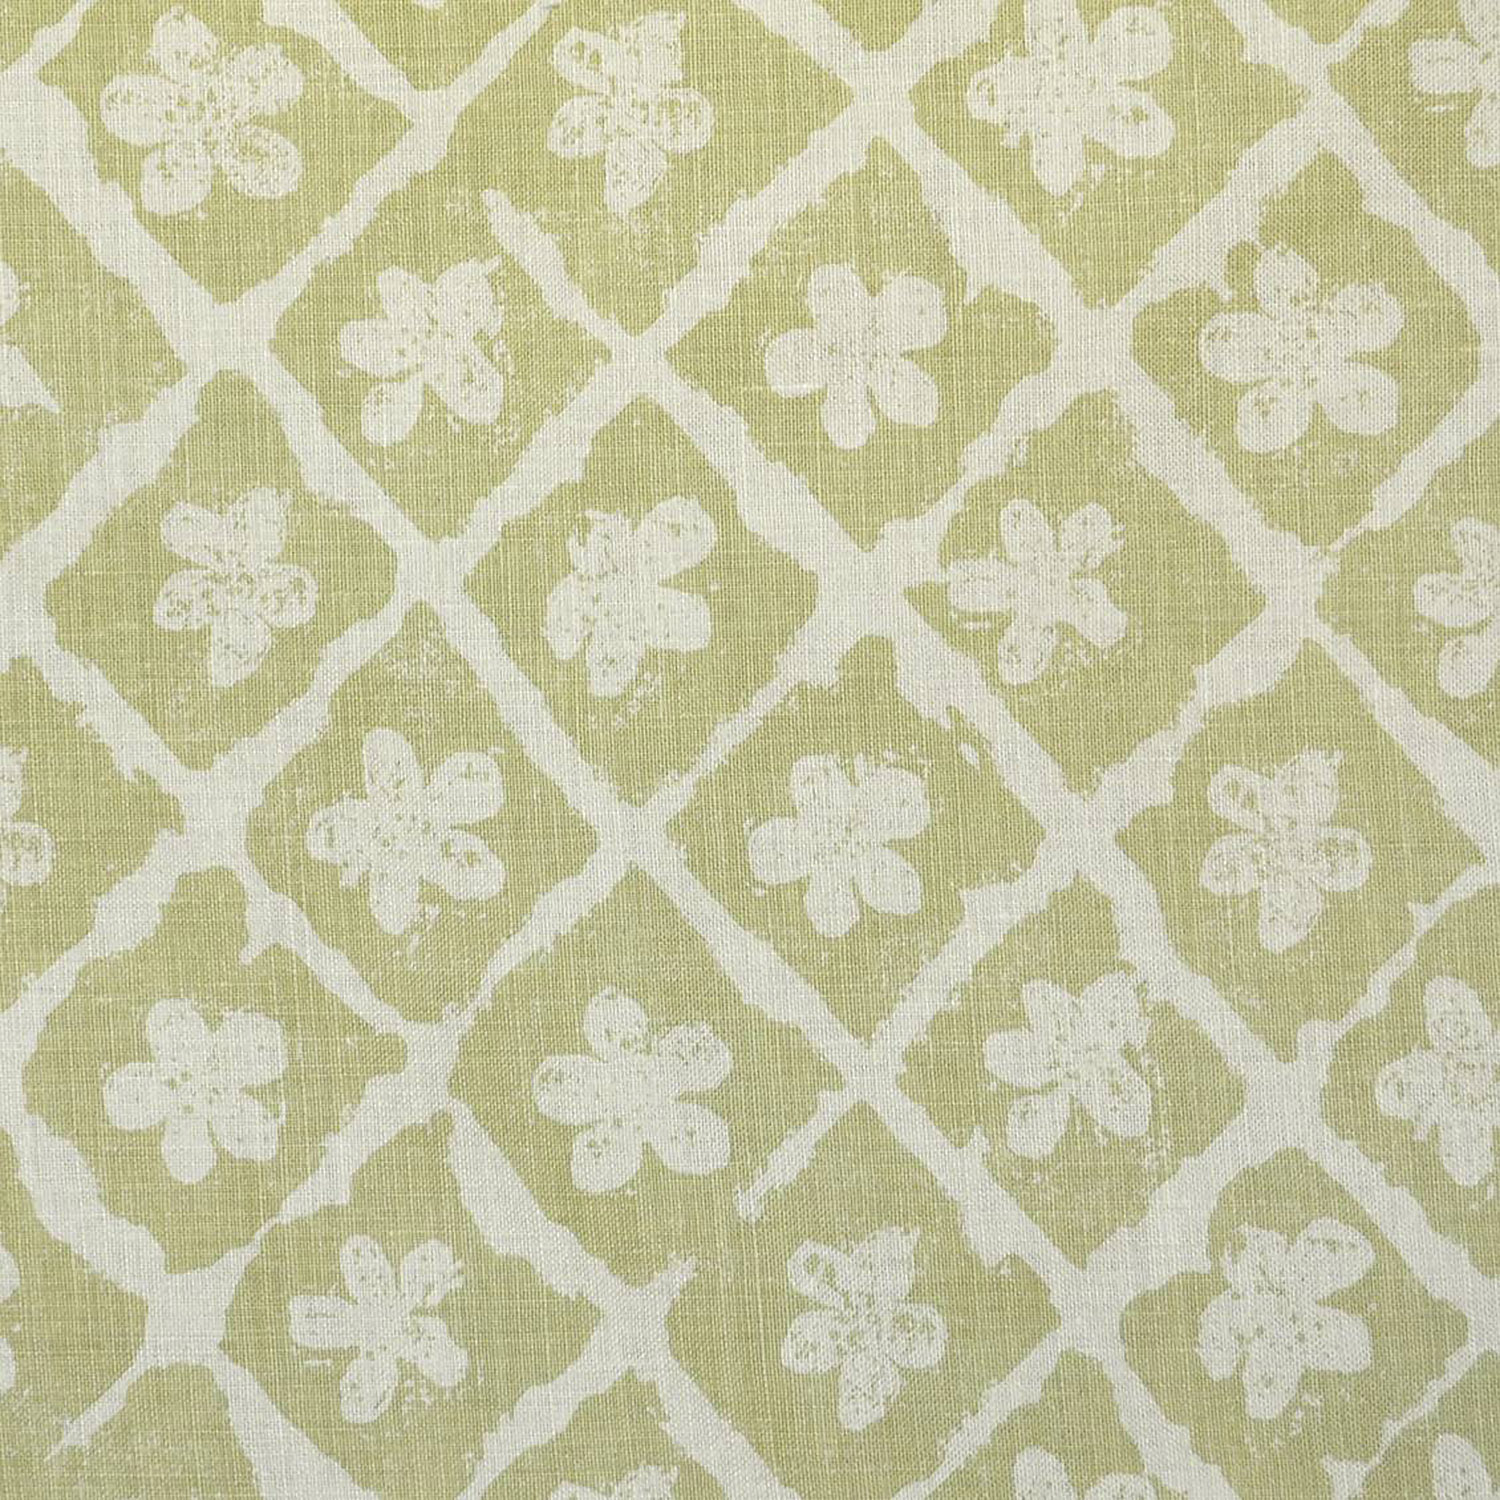 <p><strong>POMEROY</strong>lime/natural 9000-03<a href=/collection-3/pomeroy-lime-natural-9000-03>More →</a></p>